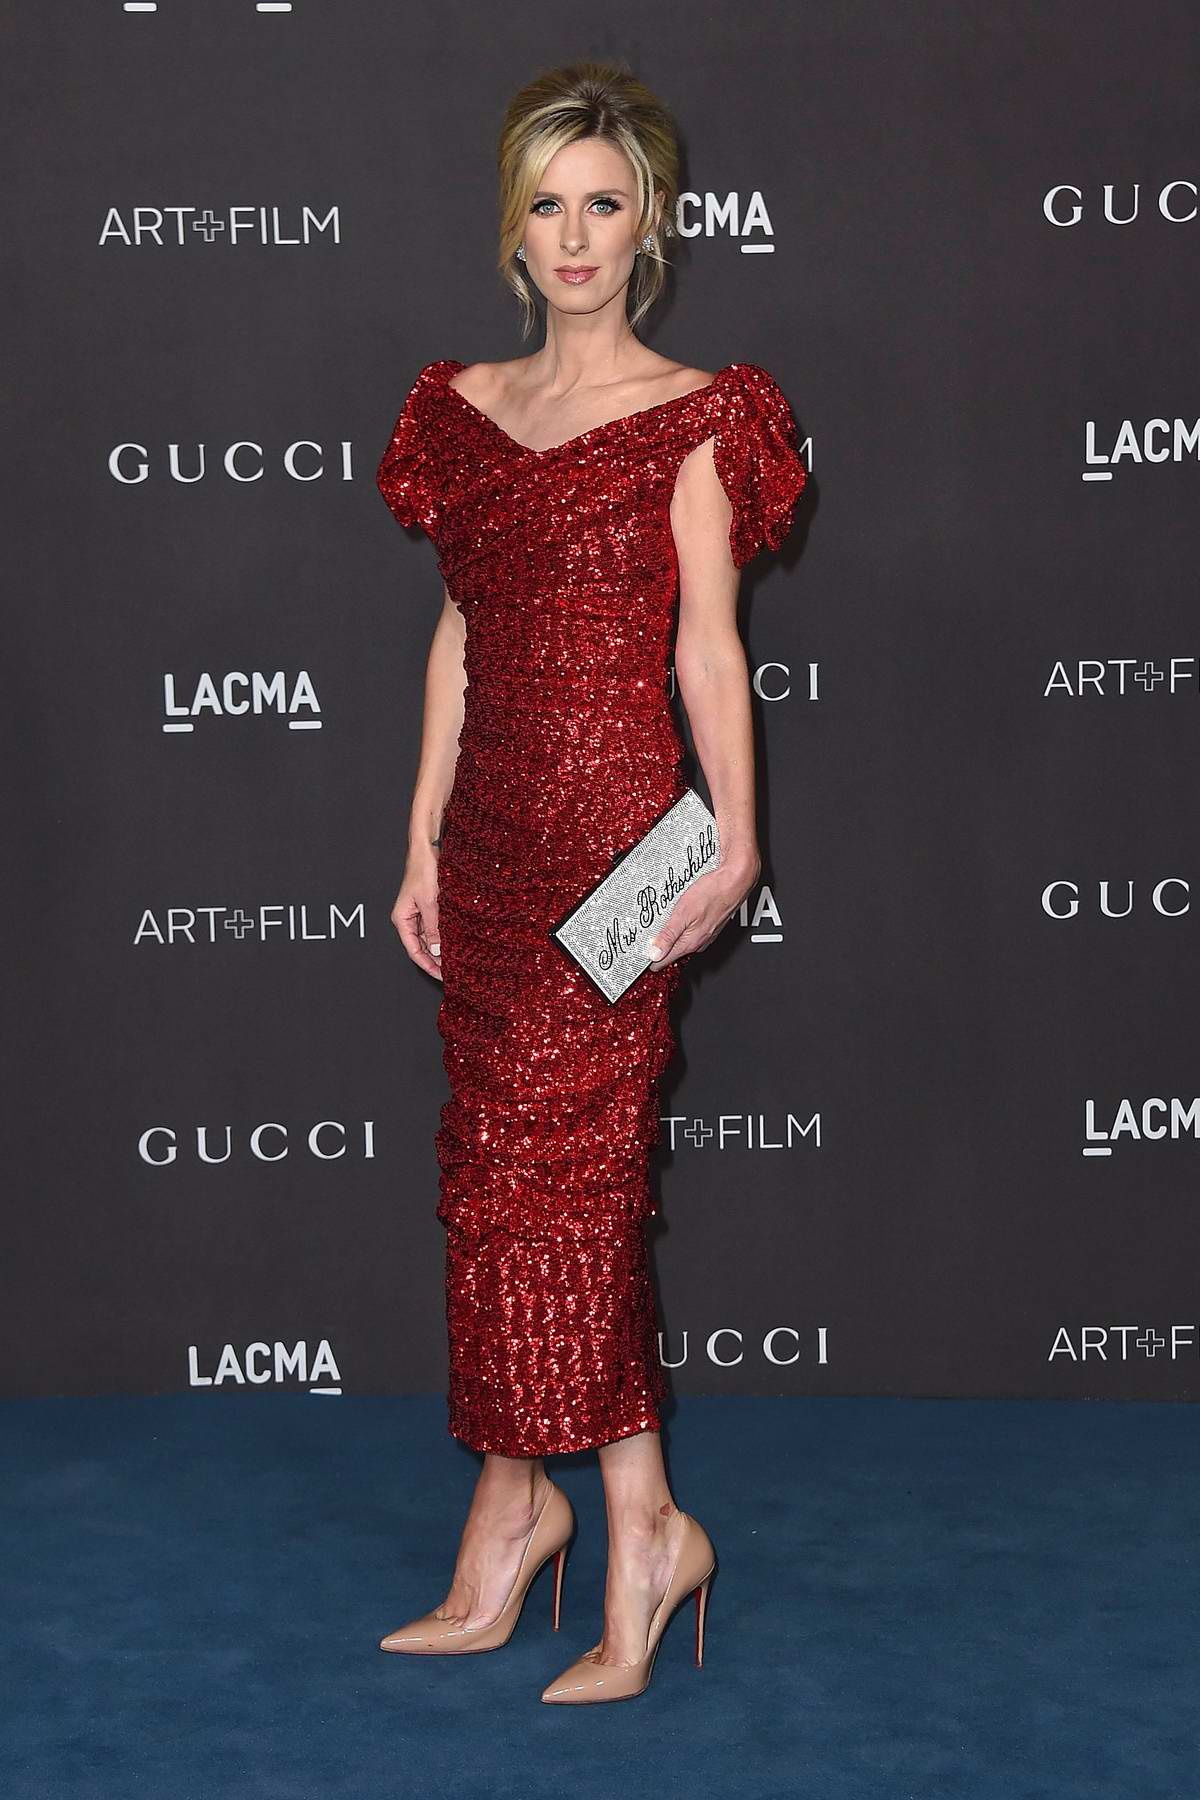 Nicky Hilton attends the 2019 LACMA 2019 Art + Film Gala in Los Angeles